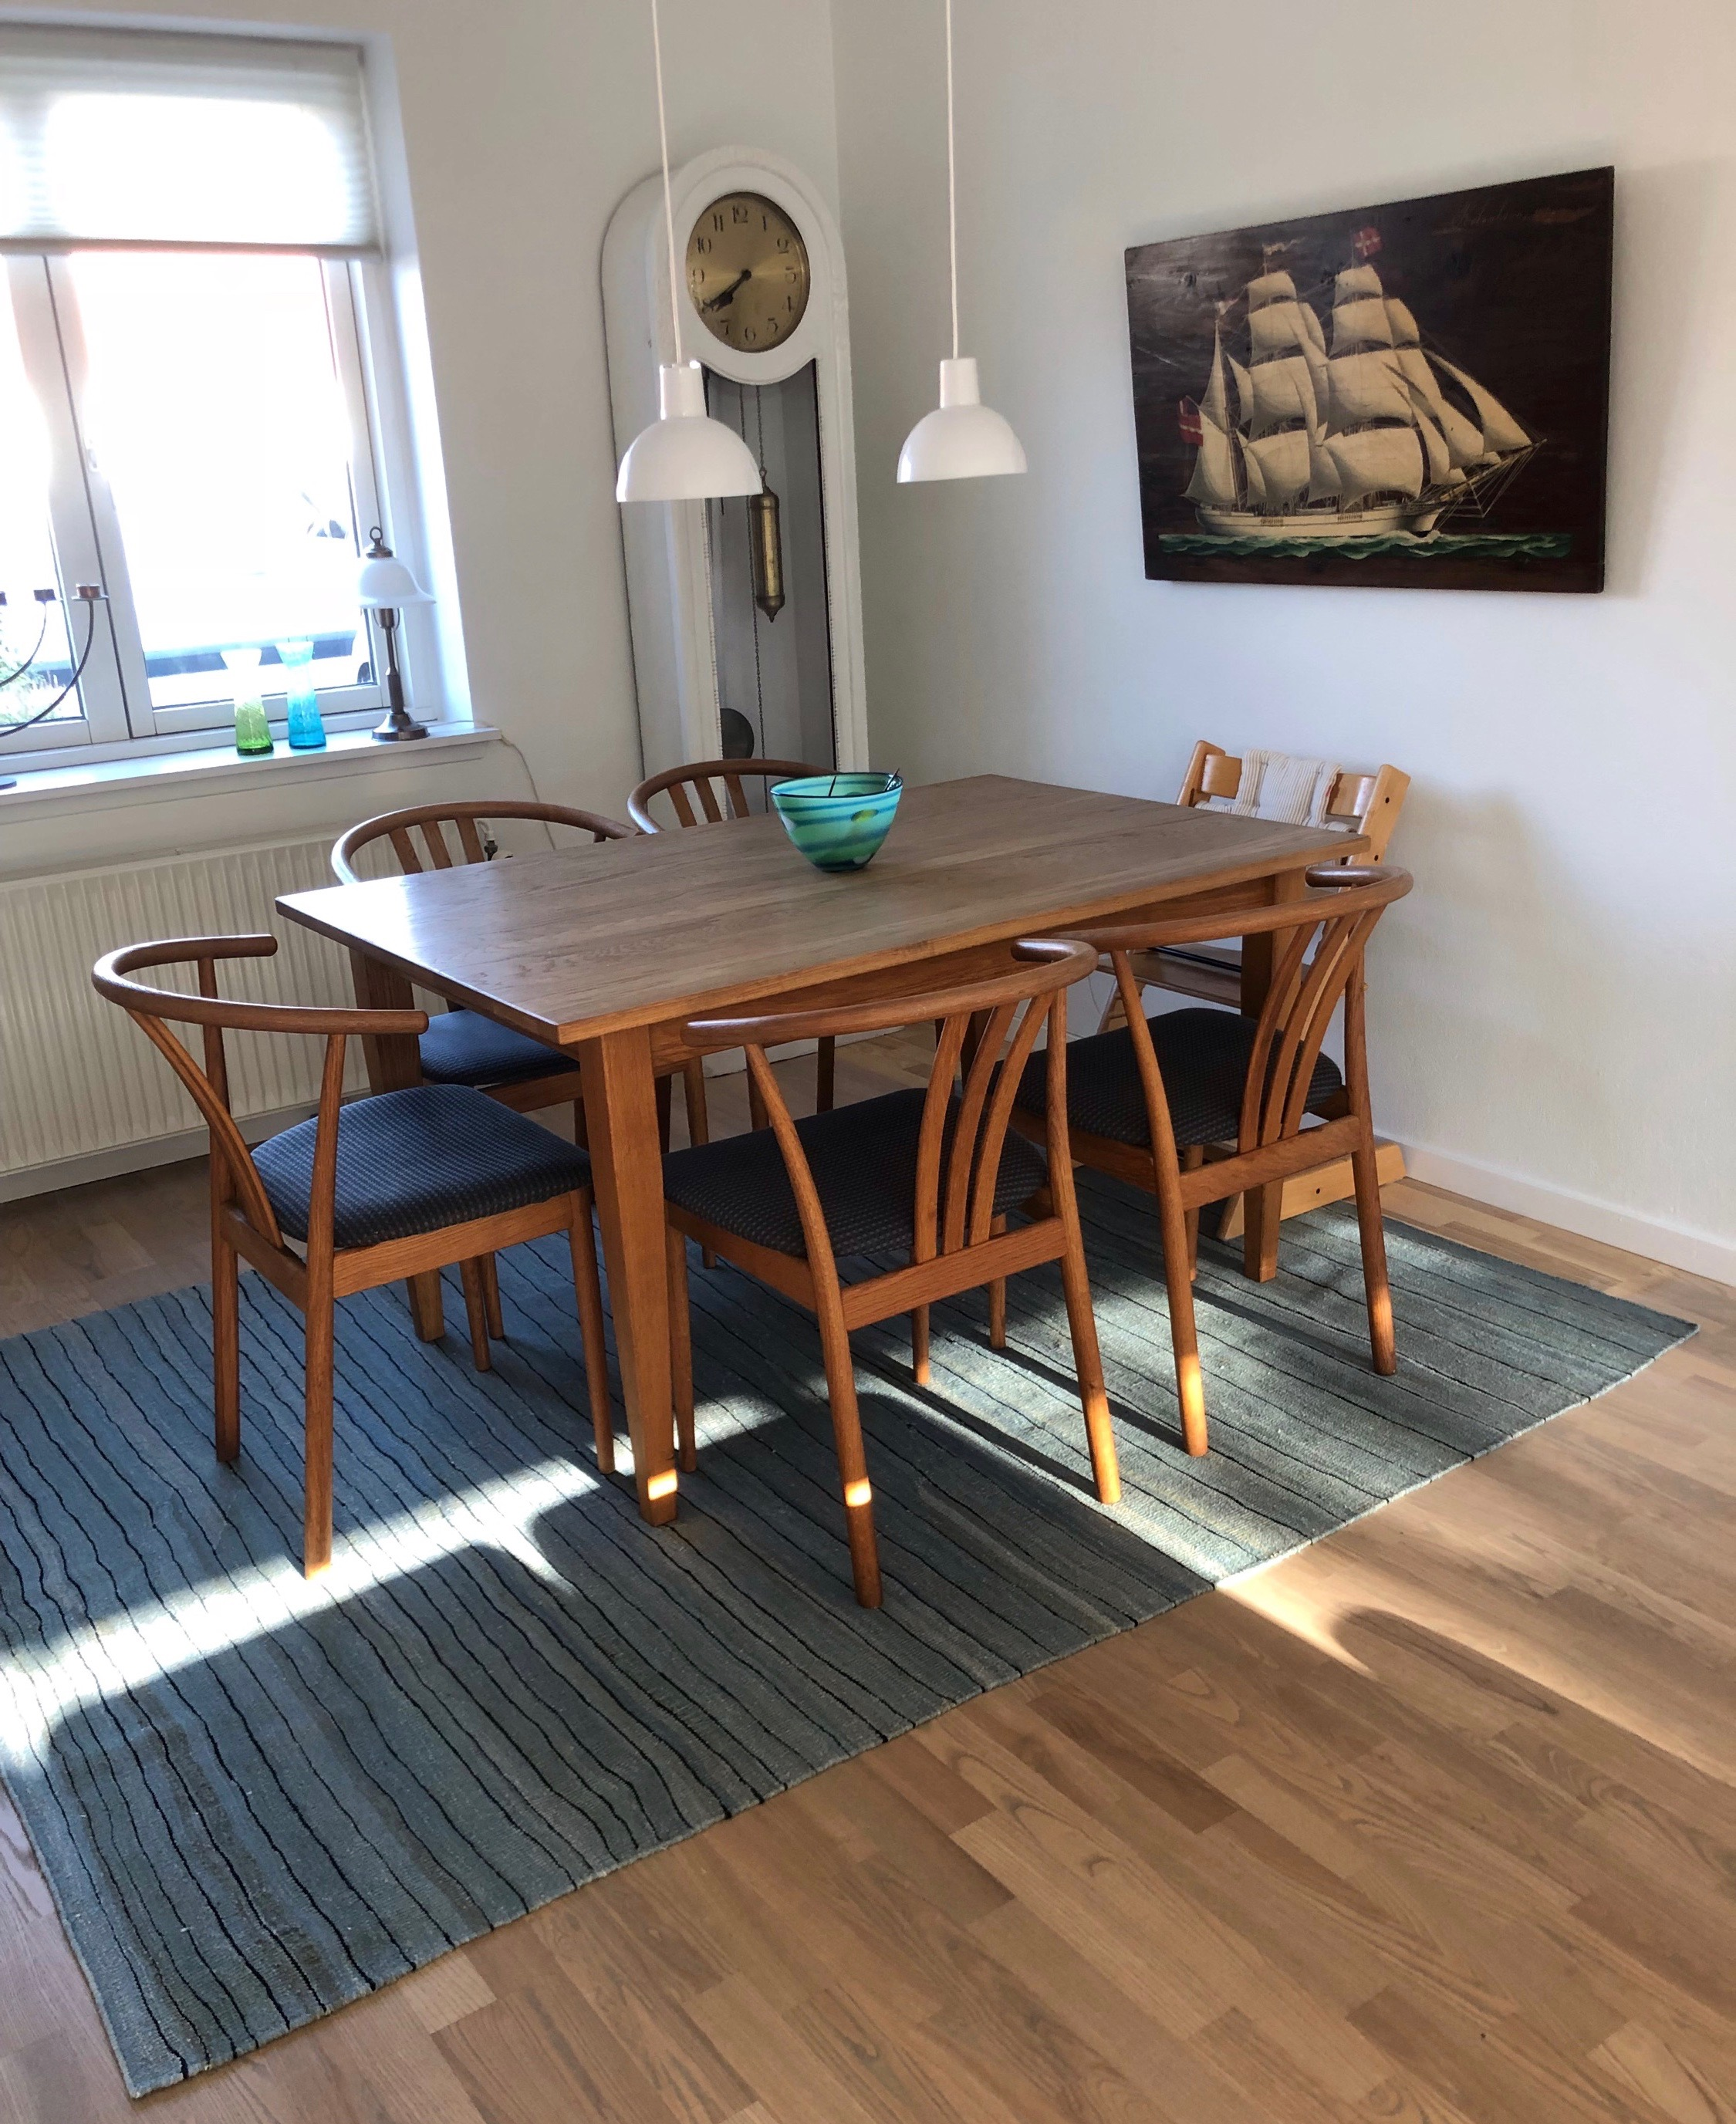 Dining goes hygge - A Lila Valadan kilim for a private home in Southern Denmark